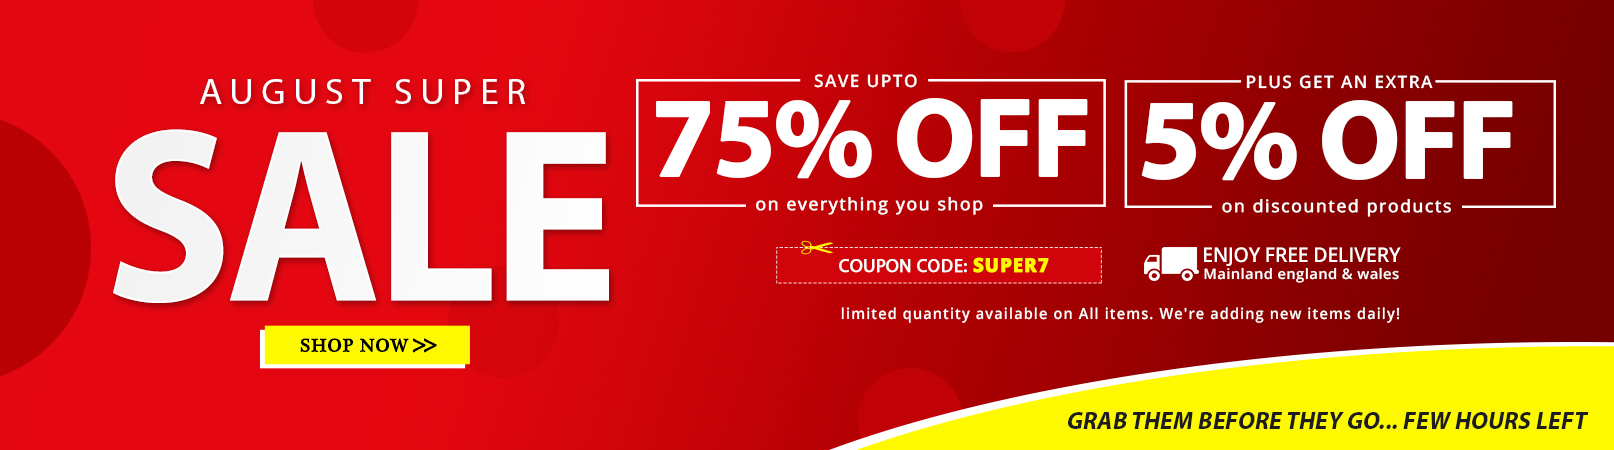 August Super Sale at Online Furniture Store